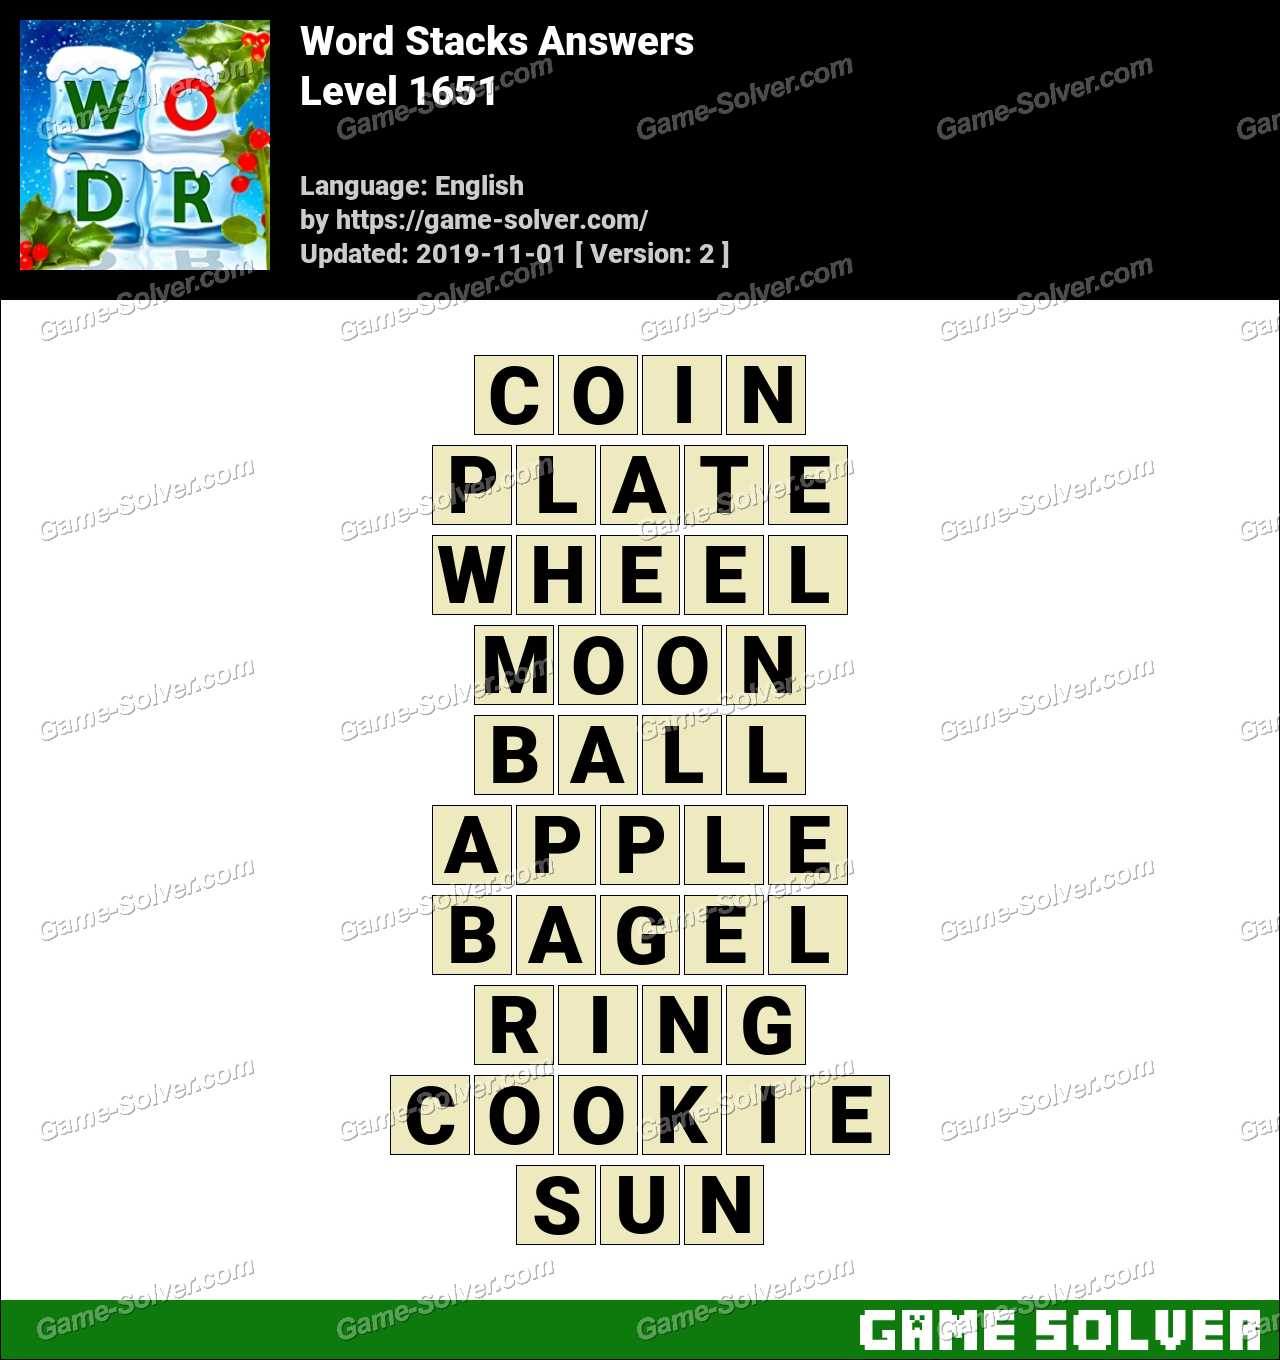 Word Stacks Level 1651 Answers